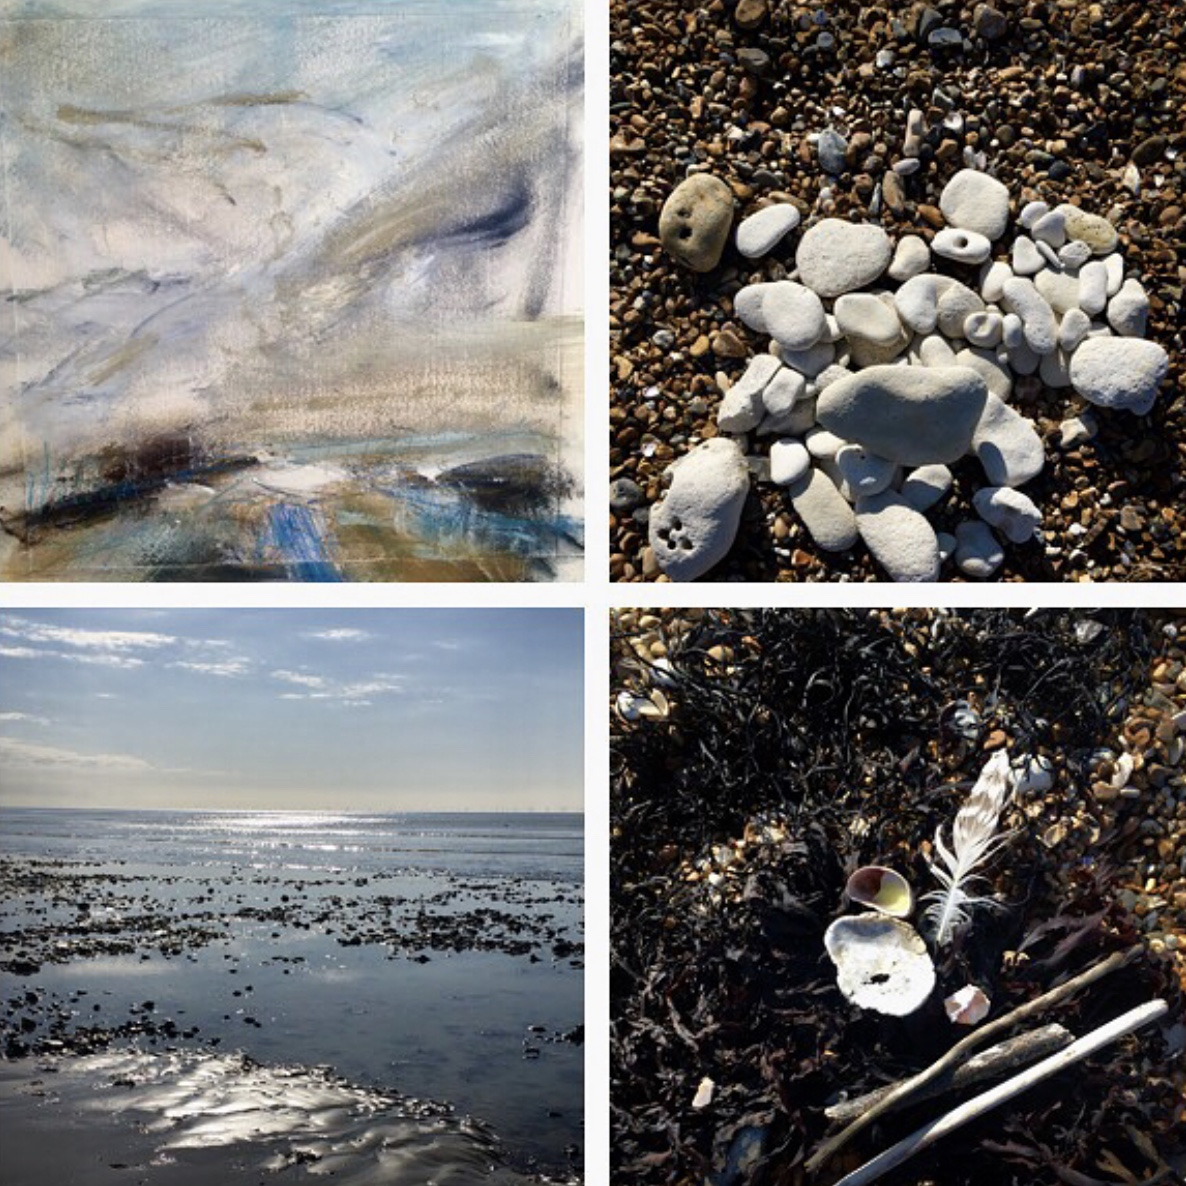 Example of Lucy's 'Place Palette' - a physical snapshot of the environment she is painting.